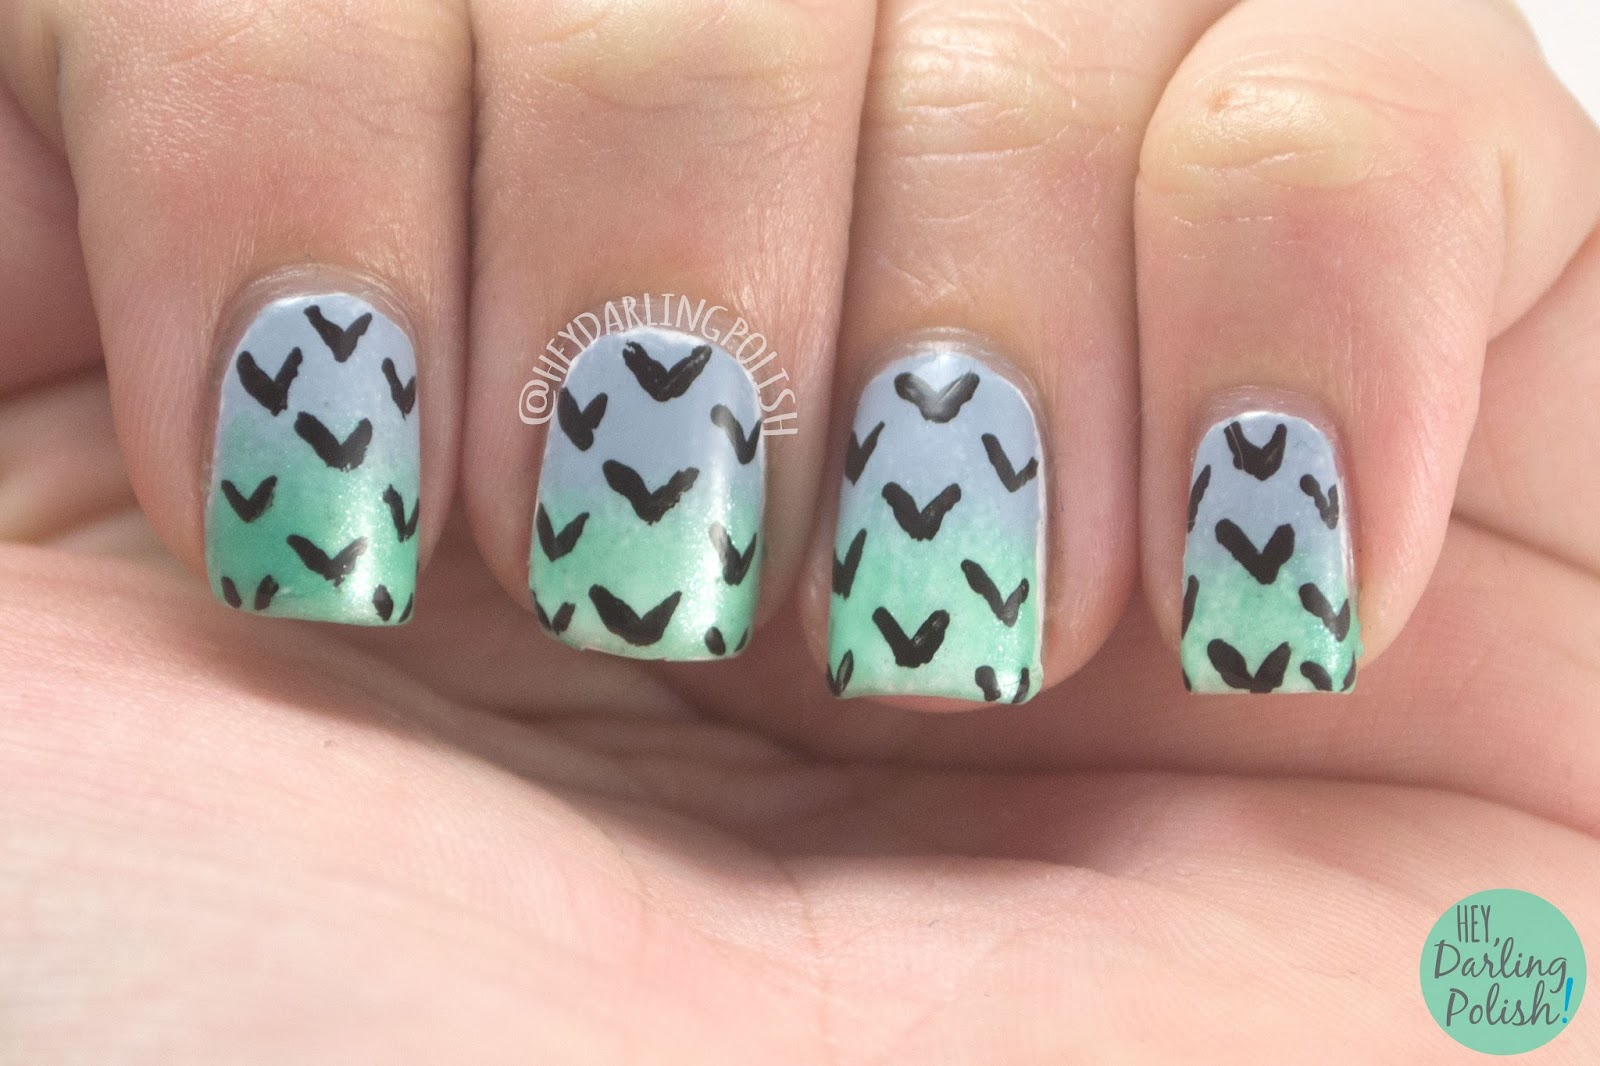 nails, nail art, nail polish, gradient, green, blue, pattern, hey darling polish, 31 day challenge, 31dc2014